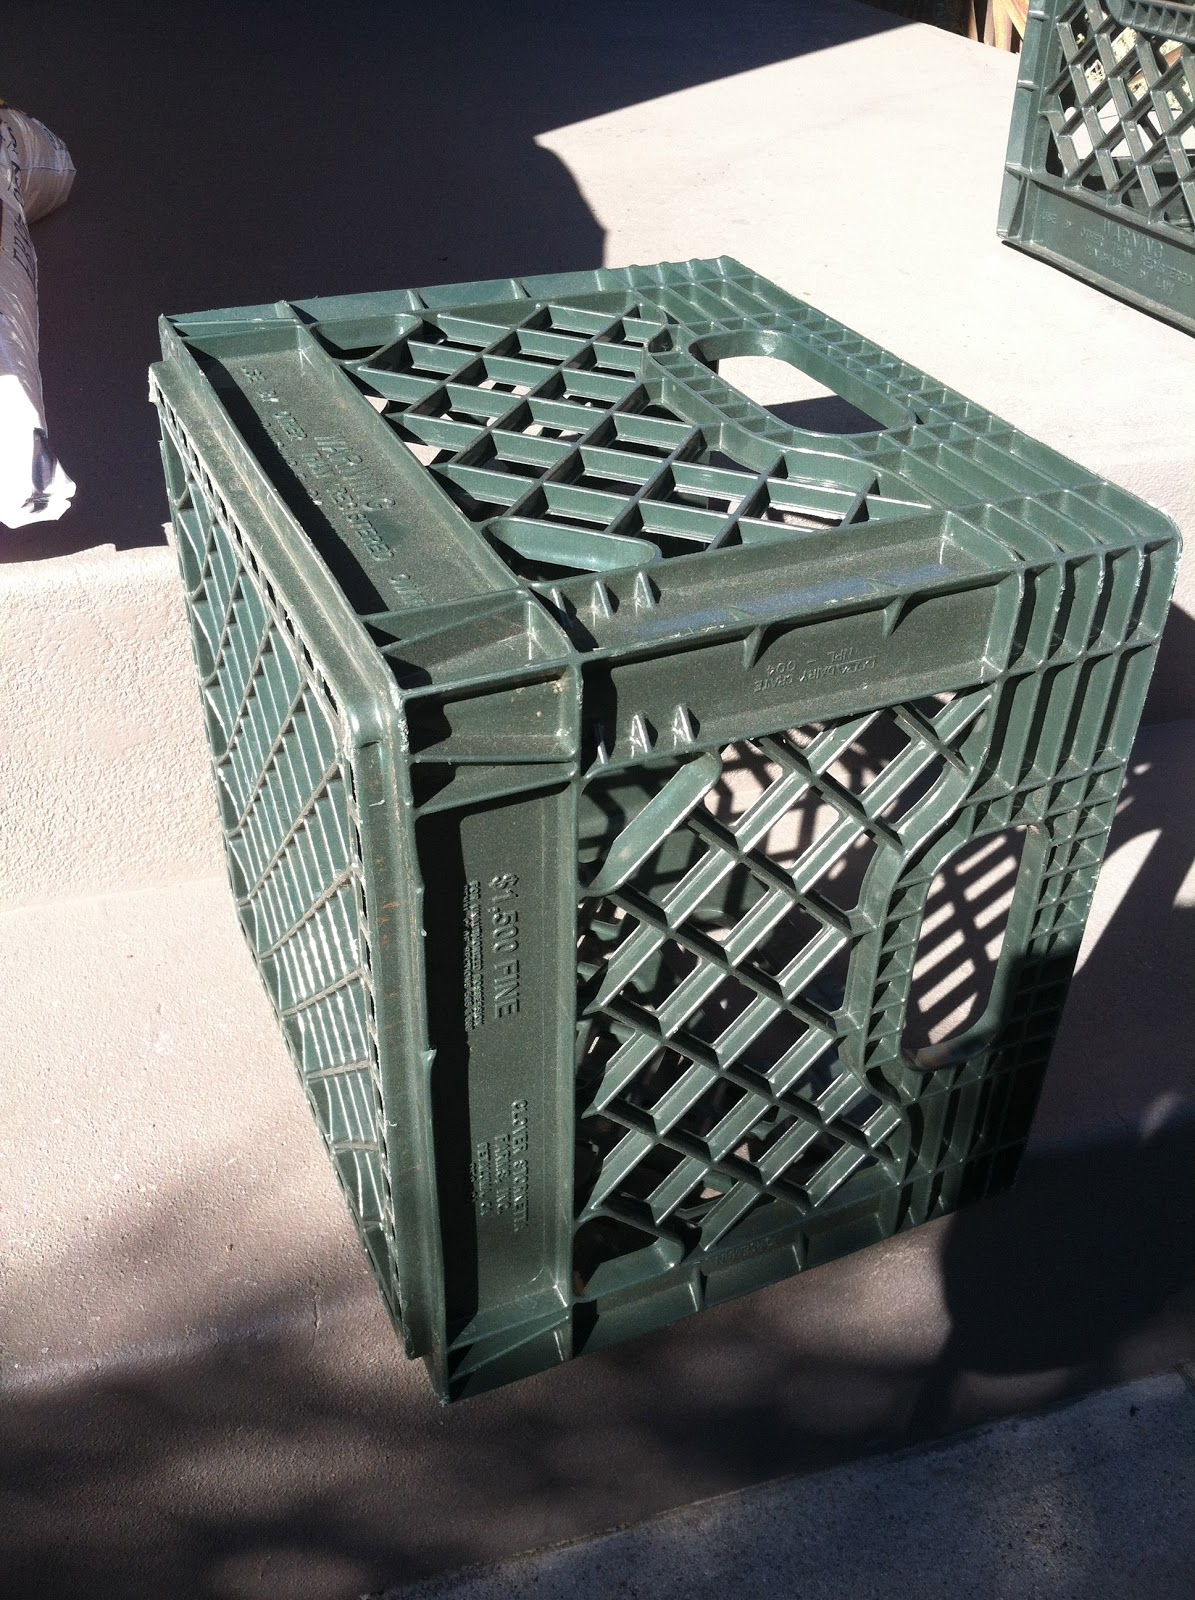 Diy pouf ottoman - Then Cut The Throw Rugs Into Squares A Few Inches Larger Than The Milk Crate